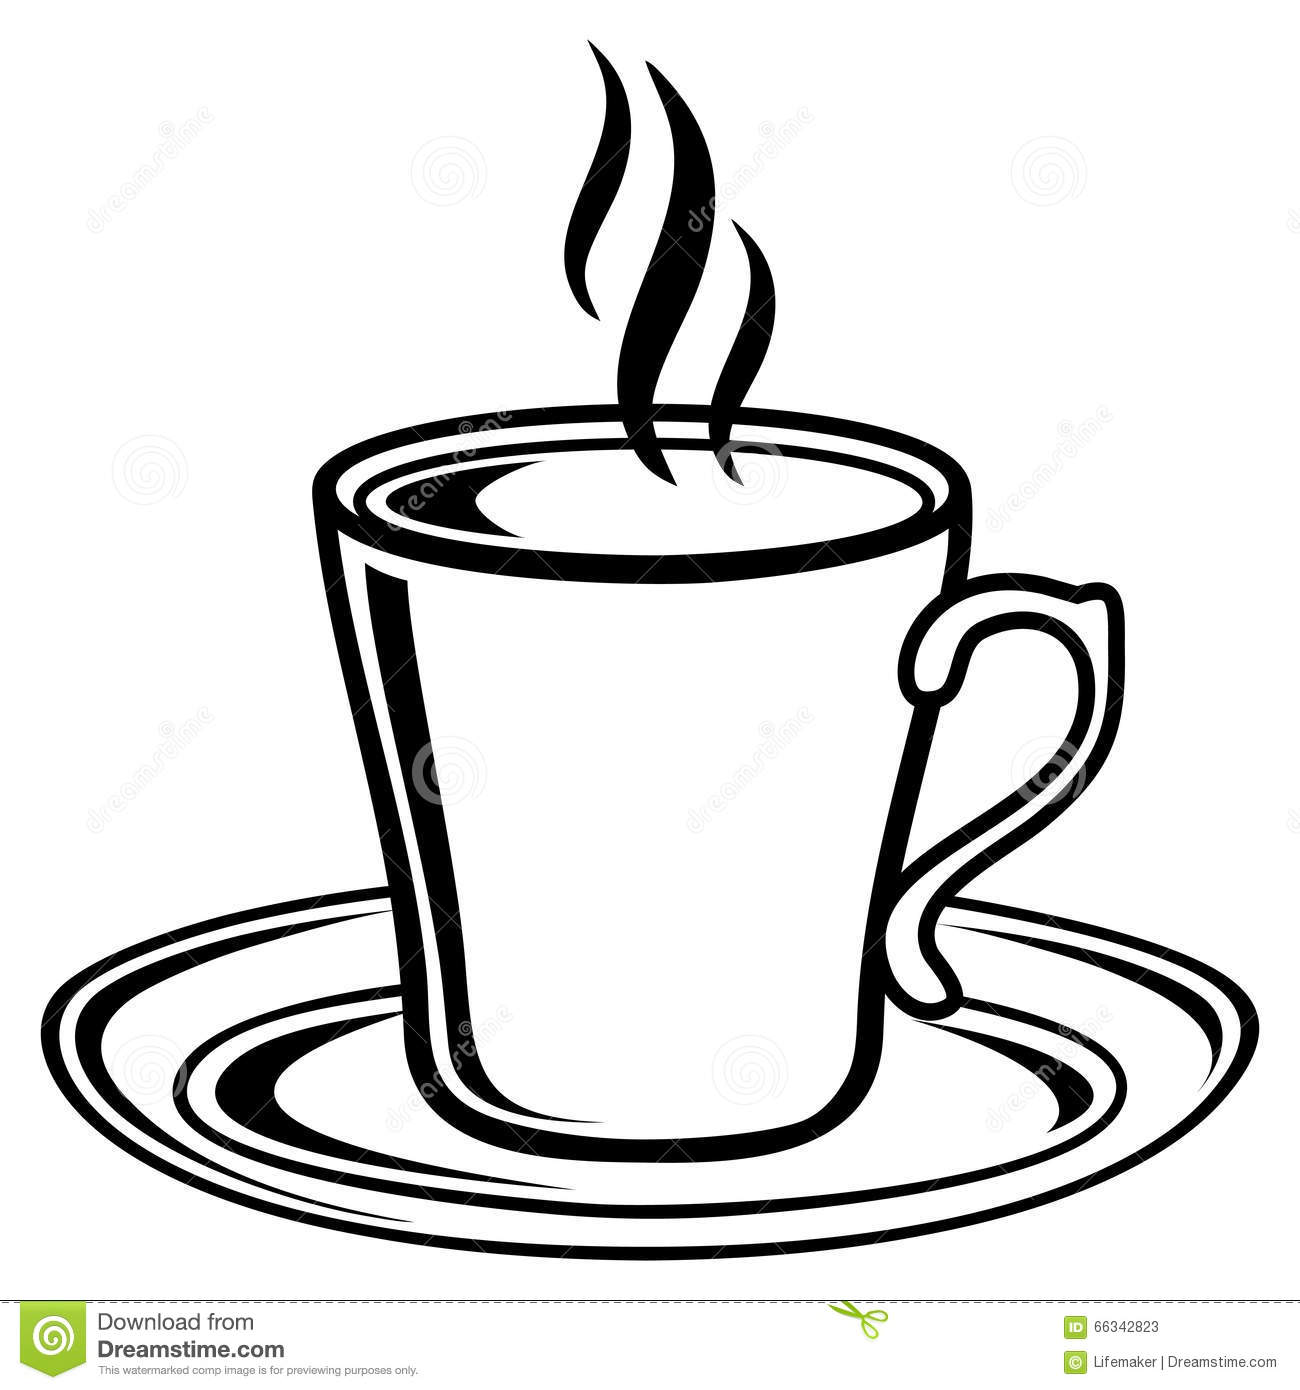 tea cup clipart black and white - photo #25